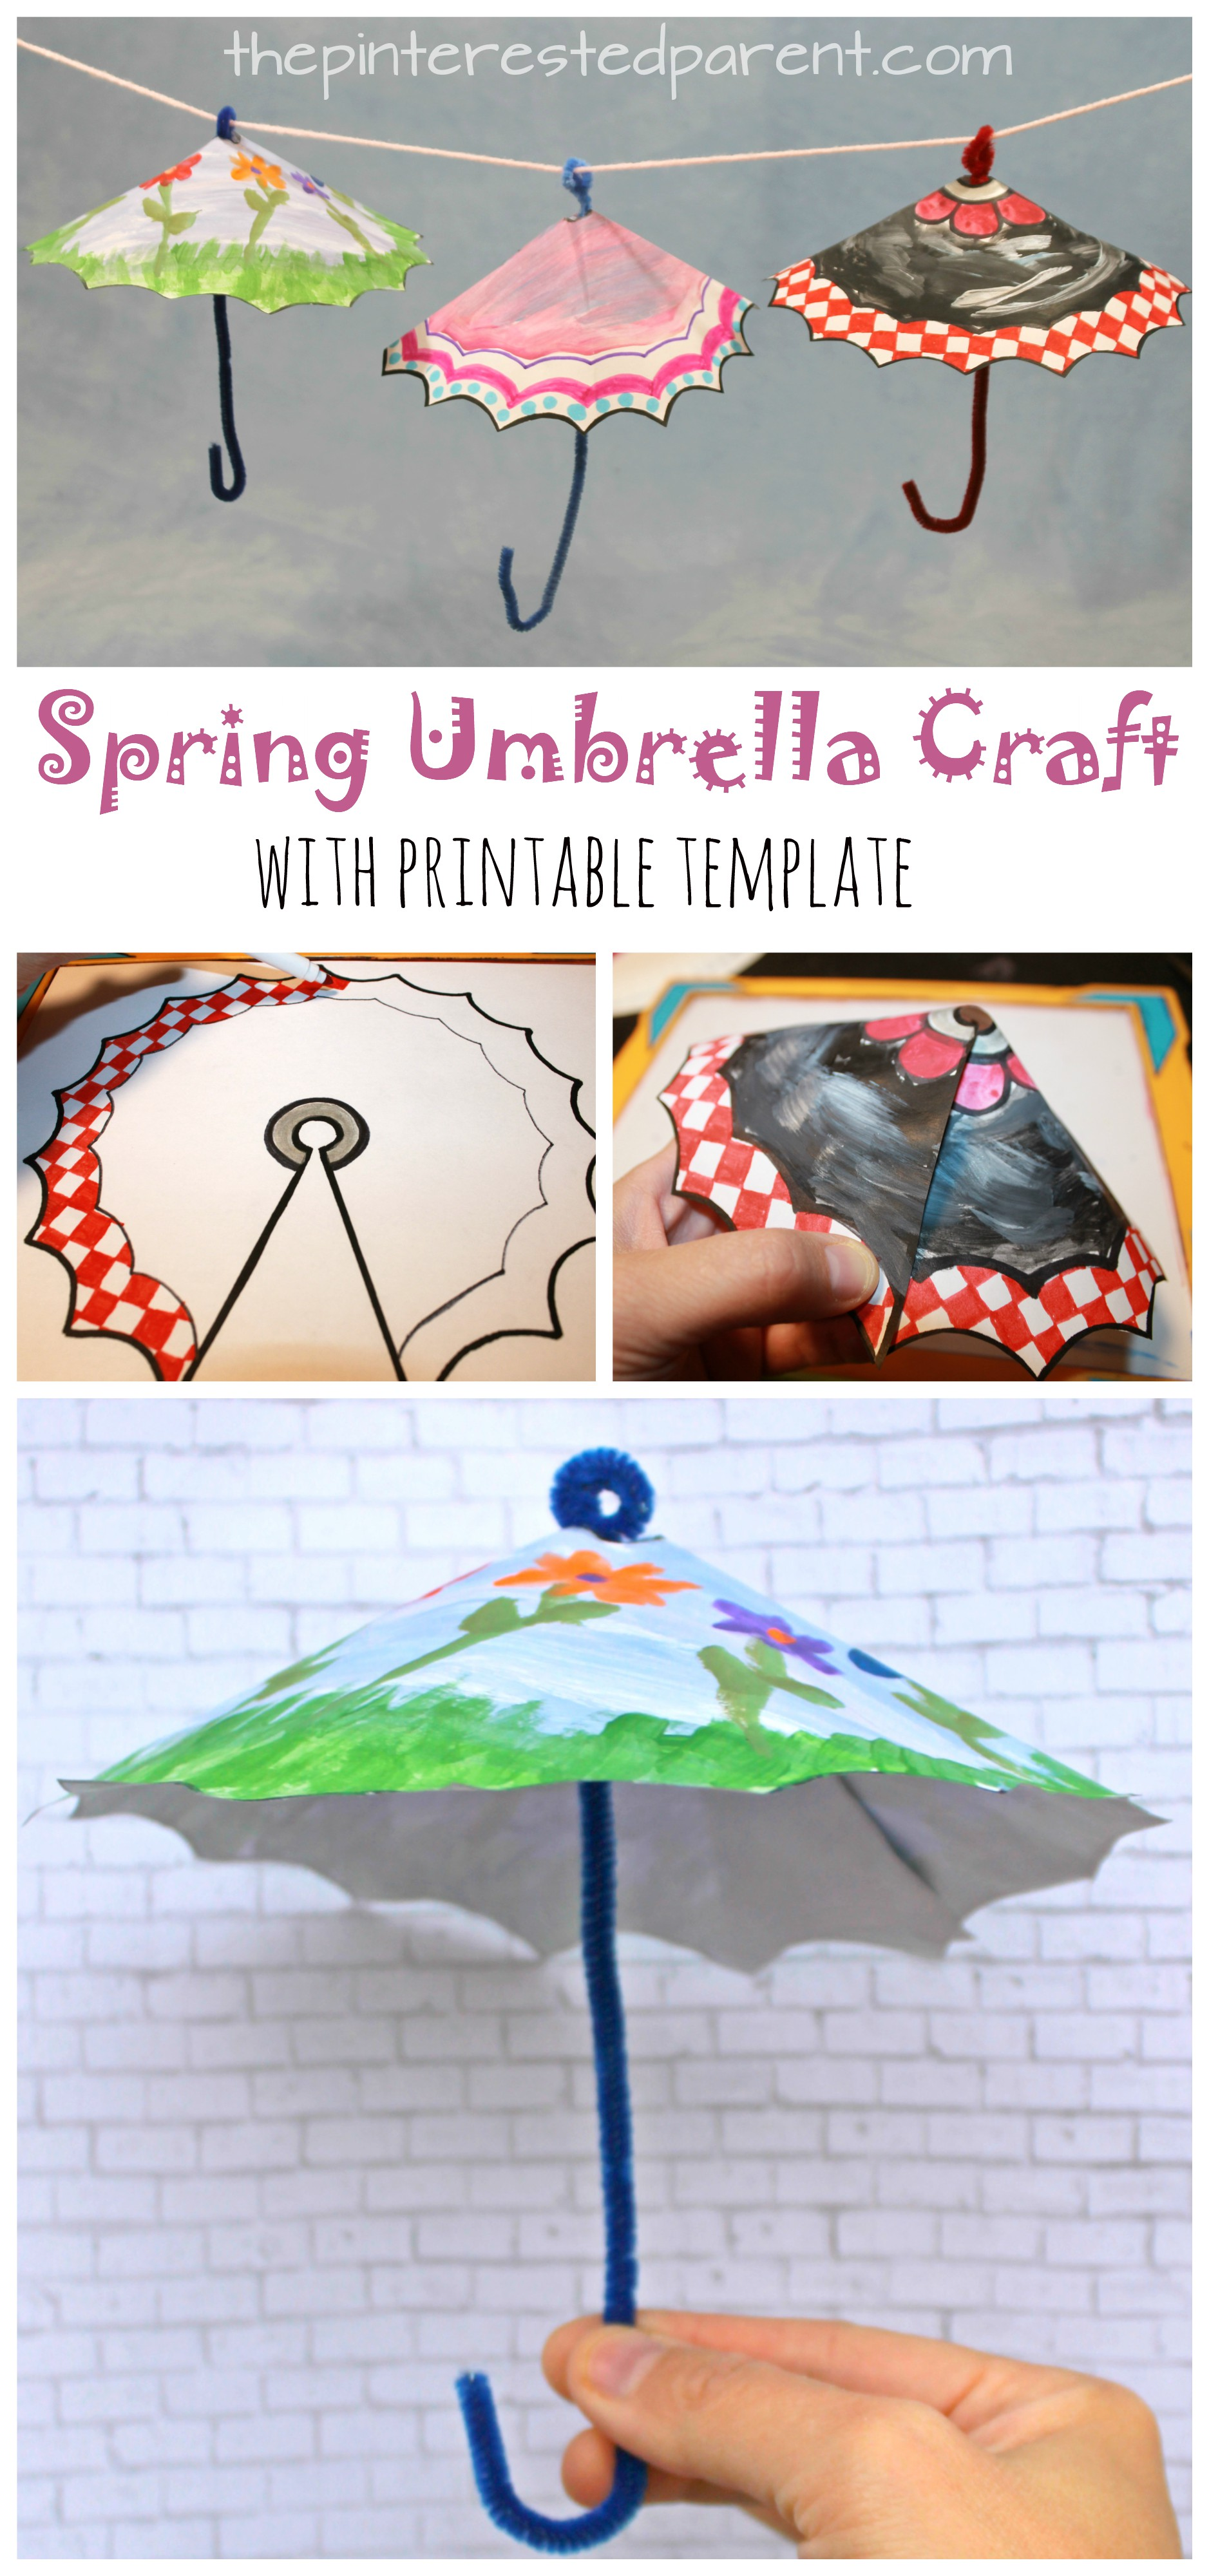 photograph about Printable Arts and Crafts identify Spring Umbrella Craft With Printable The Pinterested Guardian